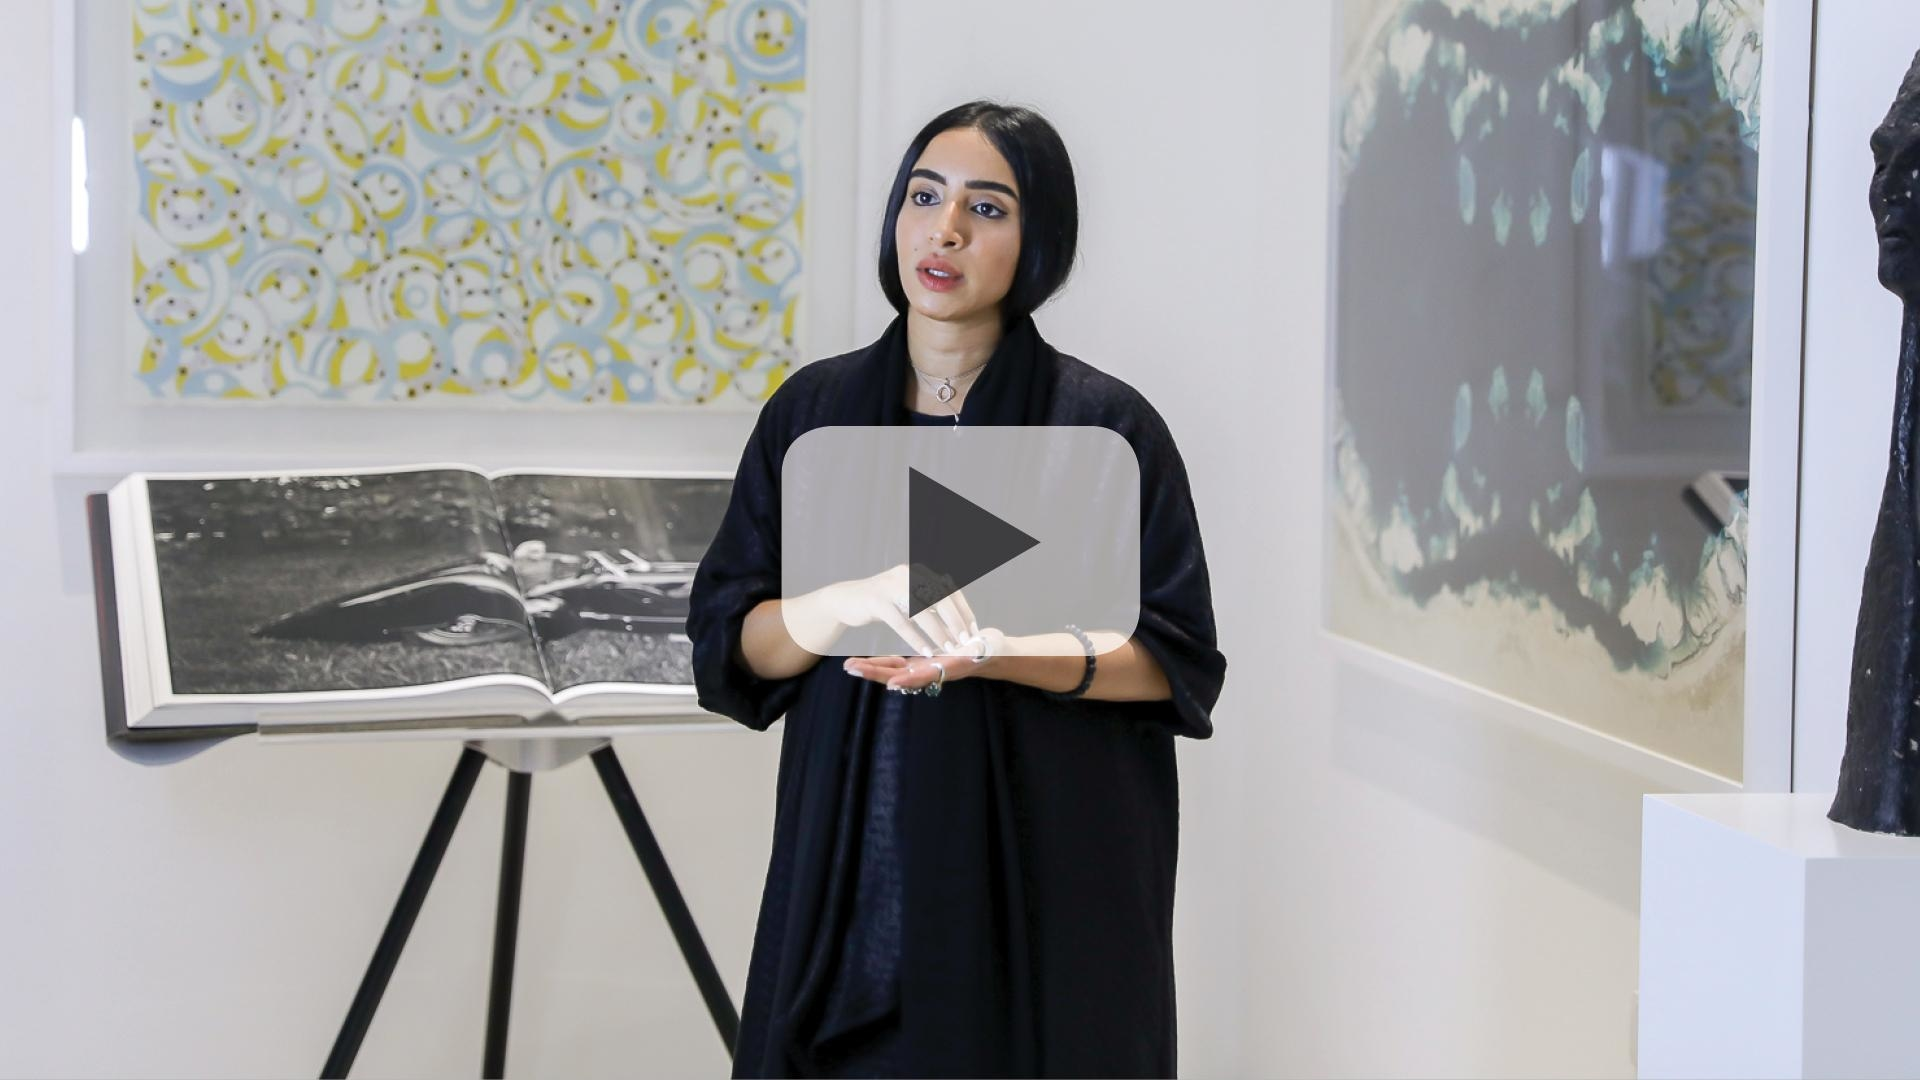 Watch Now: Exclusive Look At KOA Canvas Collaboration With Cuadro Art